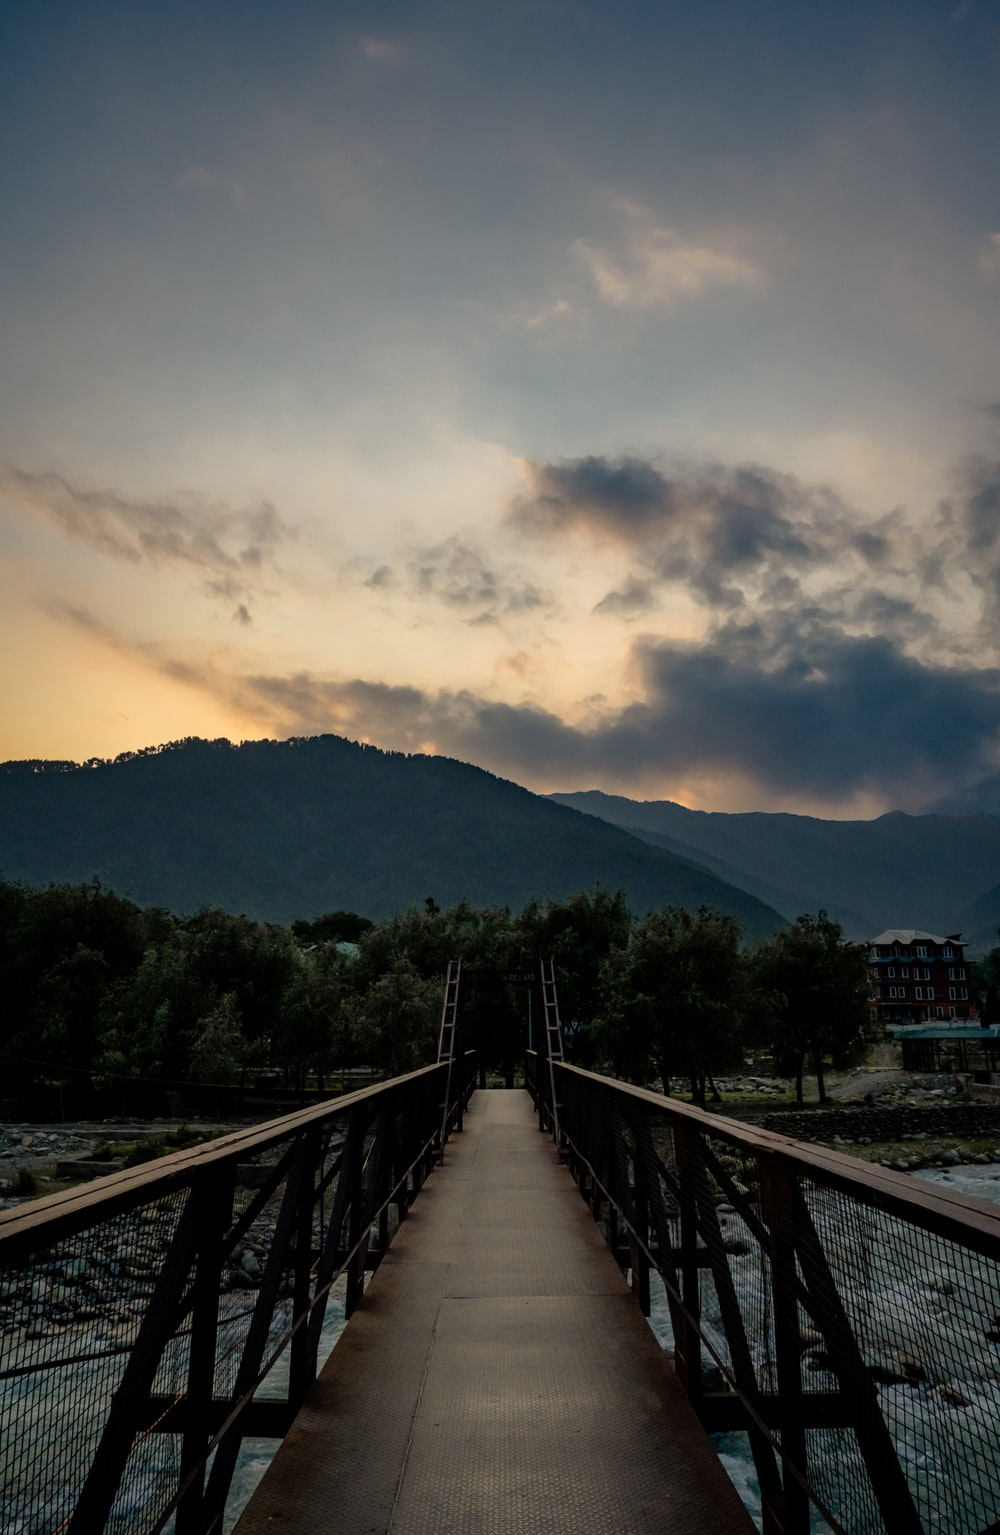 brown wooden bridge over the mountain during daytime